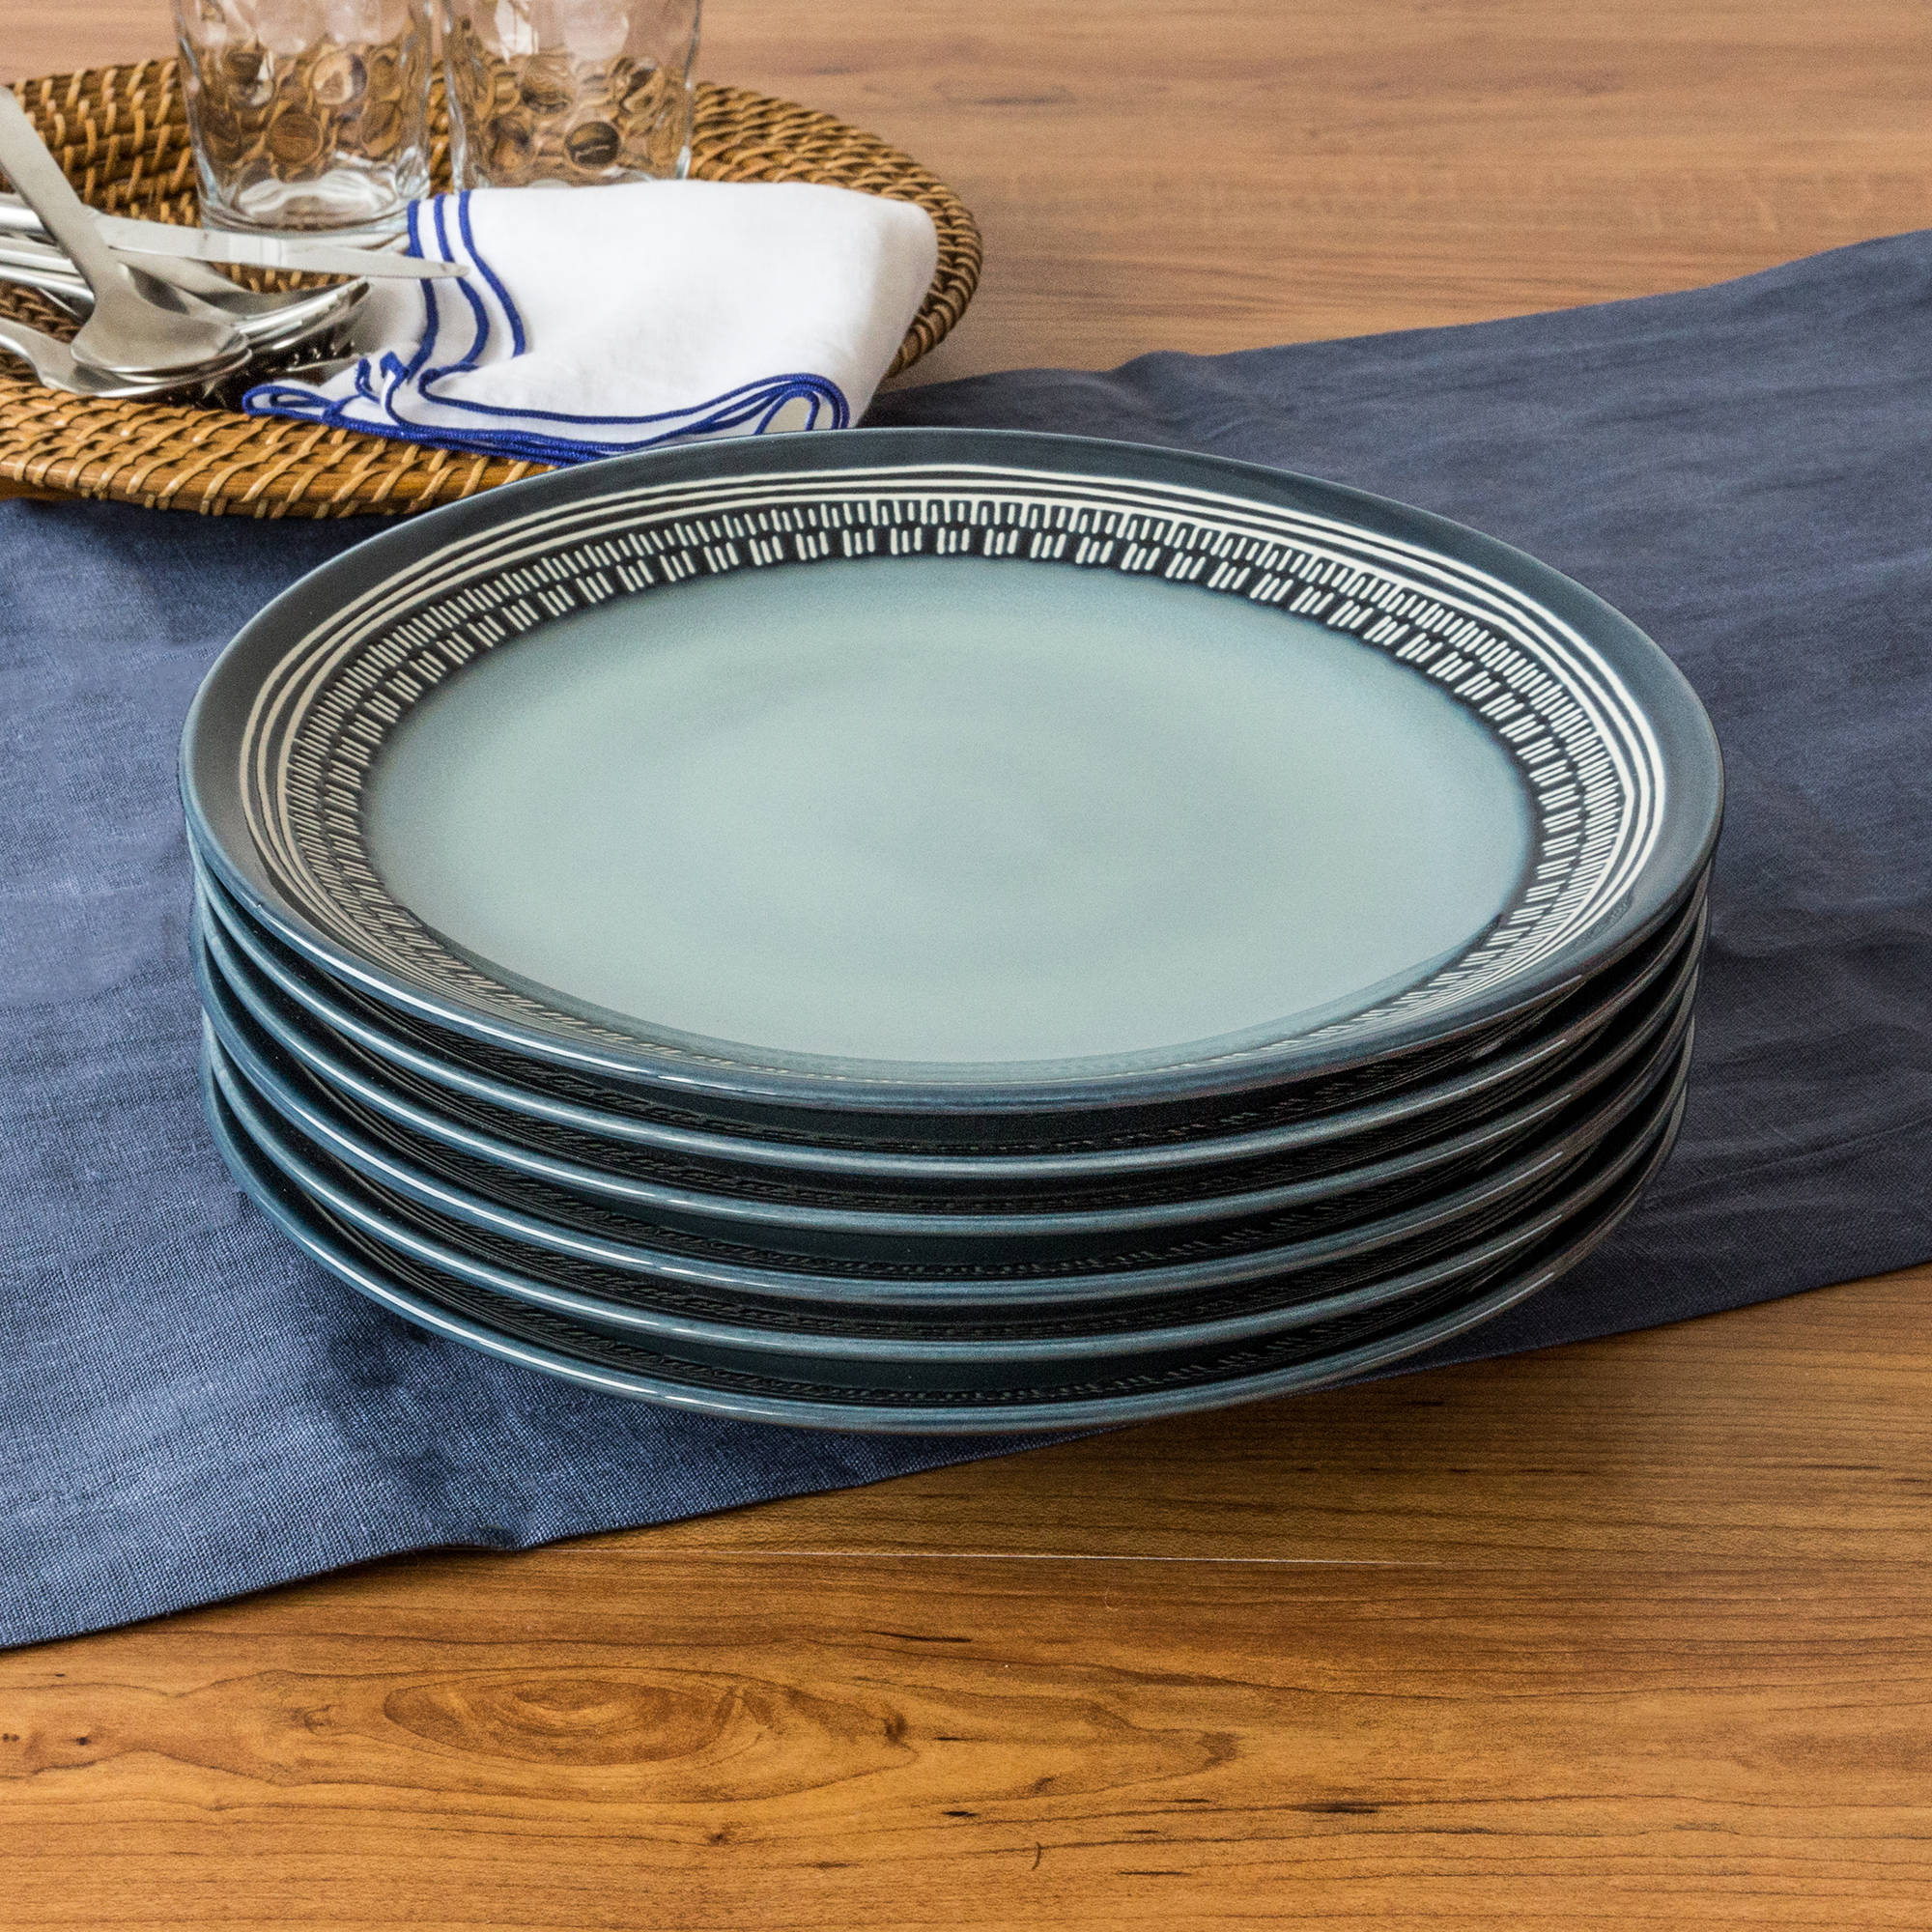 Better Homes and Gardens Teal Medallion Dinner Plates Teal Set of 6 : most durable dinner plates - pezcame.com